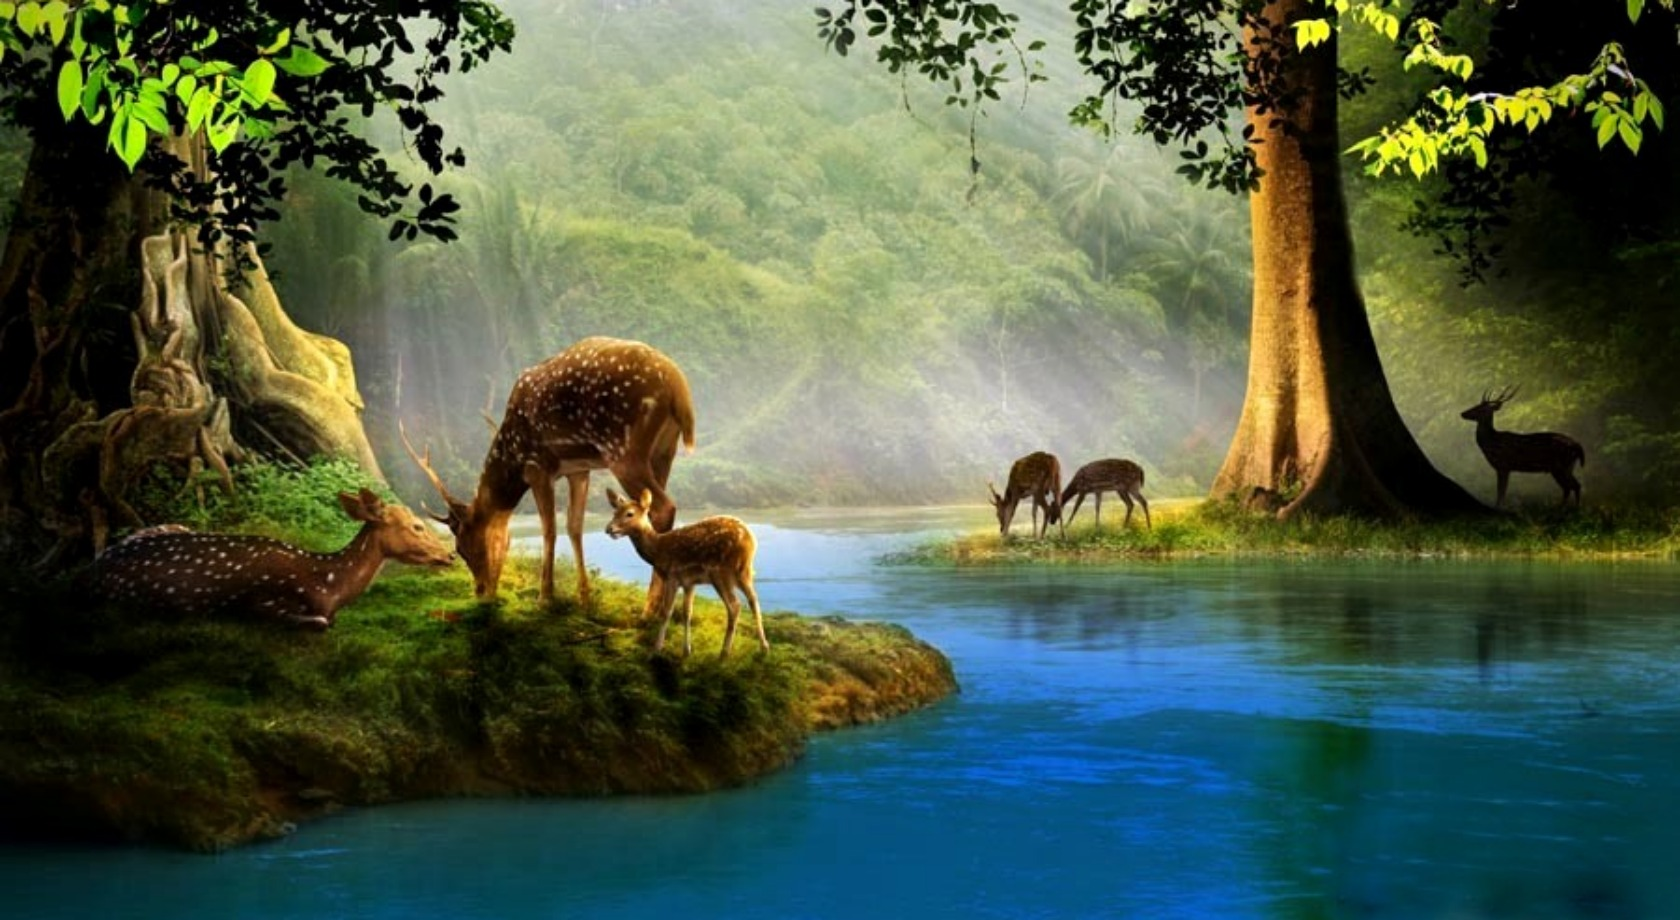 Deer Computer Wallpapers, Desktop Backgrounds 1680x920 Id: 124150